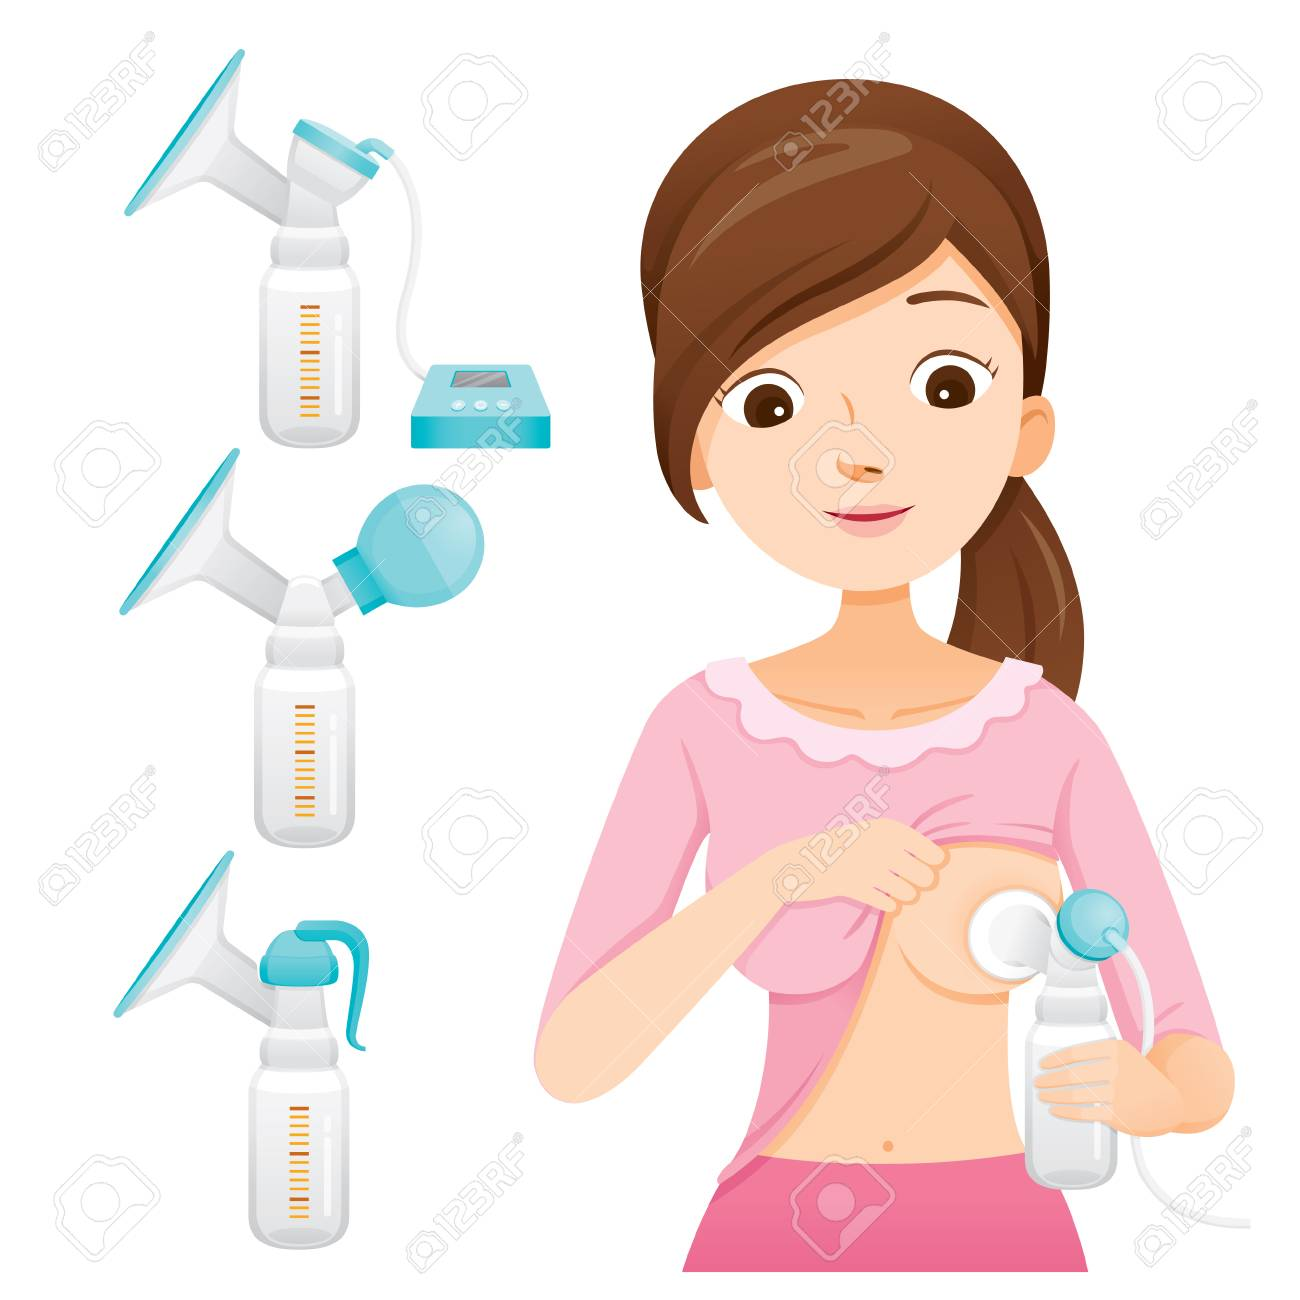 Mother Pumping Her Breast With Automatic Breast Pump. Breast Pump Set, Mother's day, Suckling, Infant, Motherhood, Innocence - 102167611